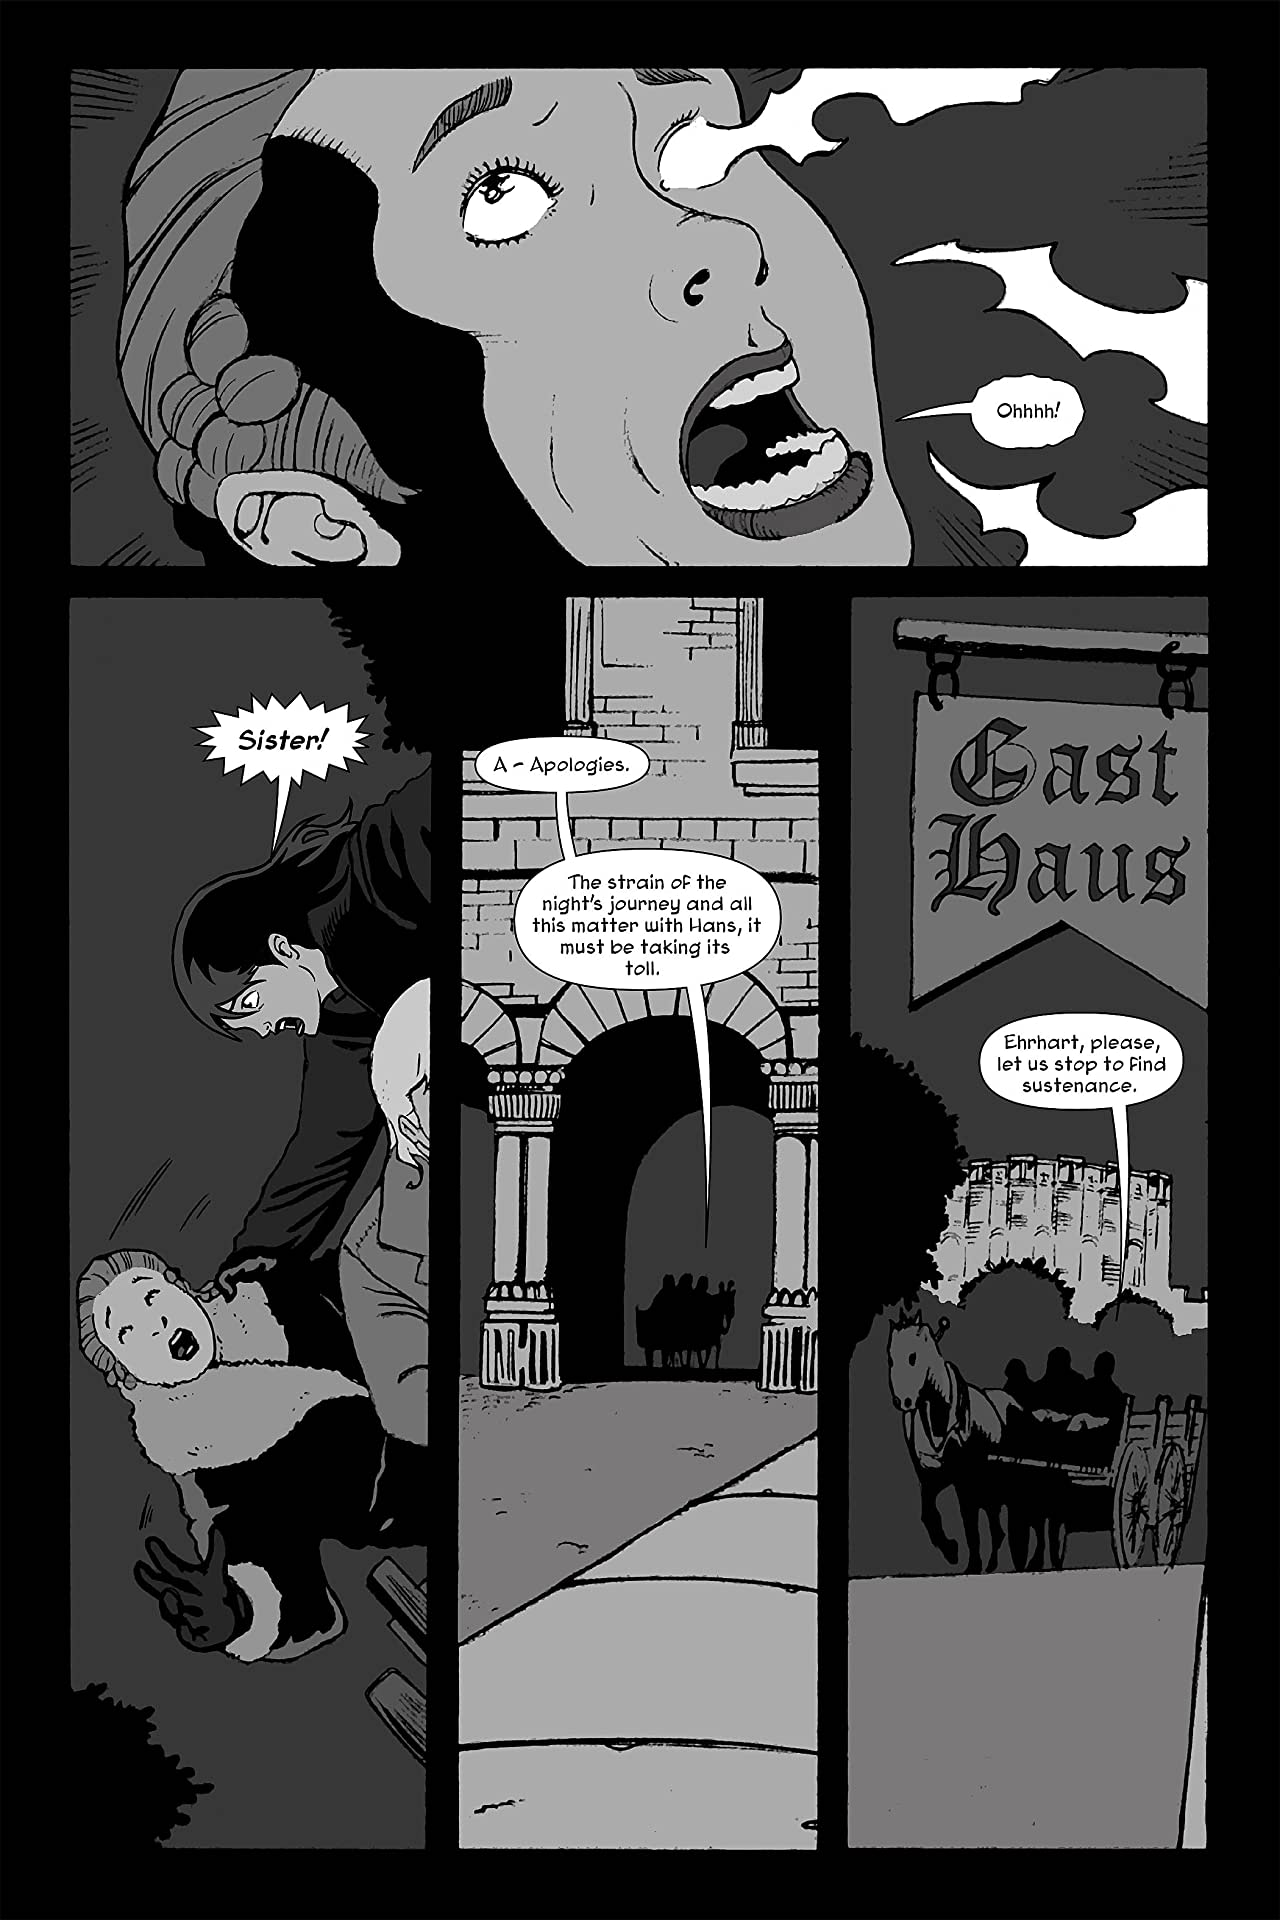 The Black Gate #2